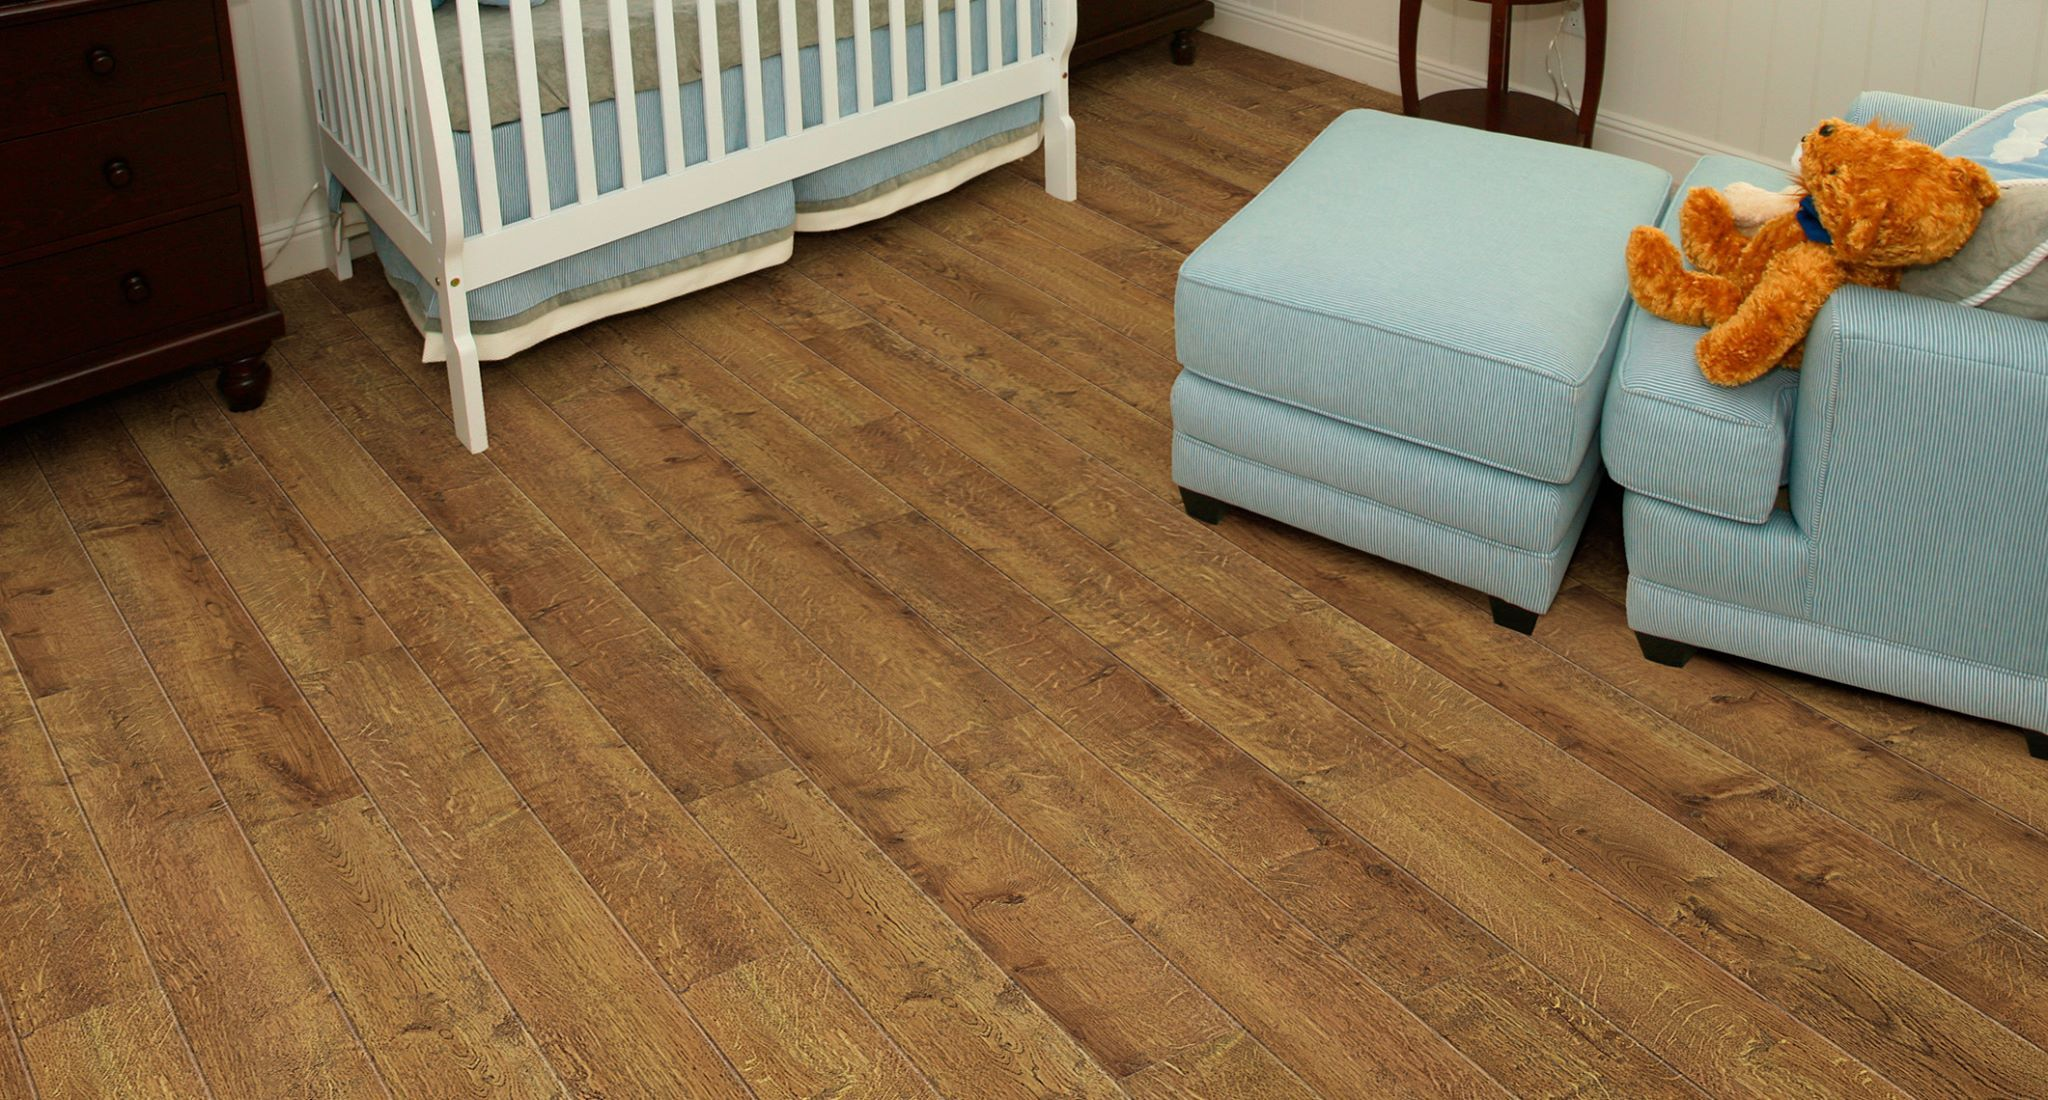 American Concepts Laminate Wood Flooring Recently Ran An Ad About The Differences Between Luxury Vinyl Tiles Lvt And